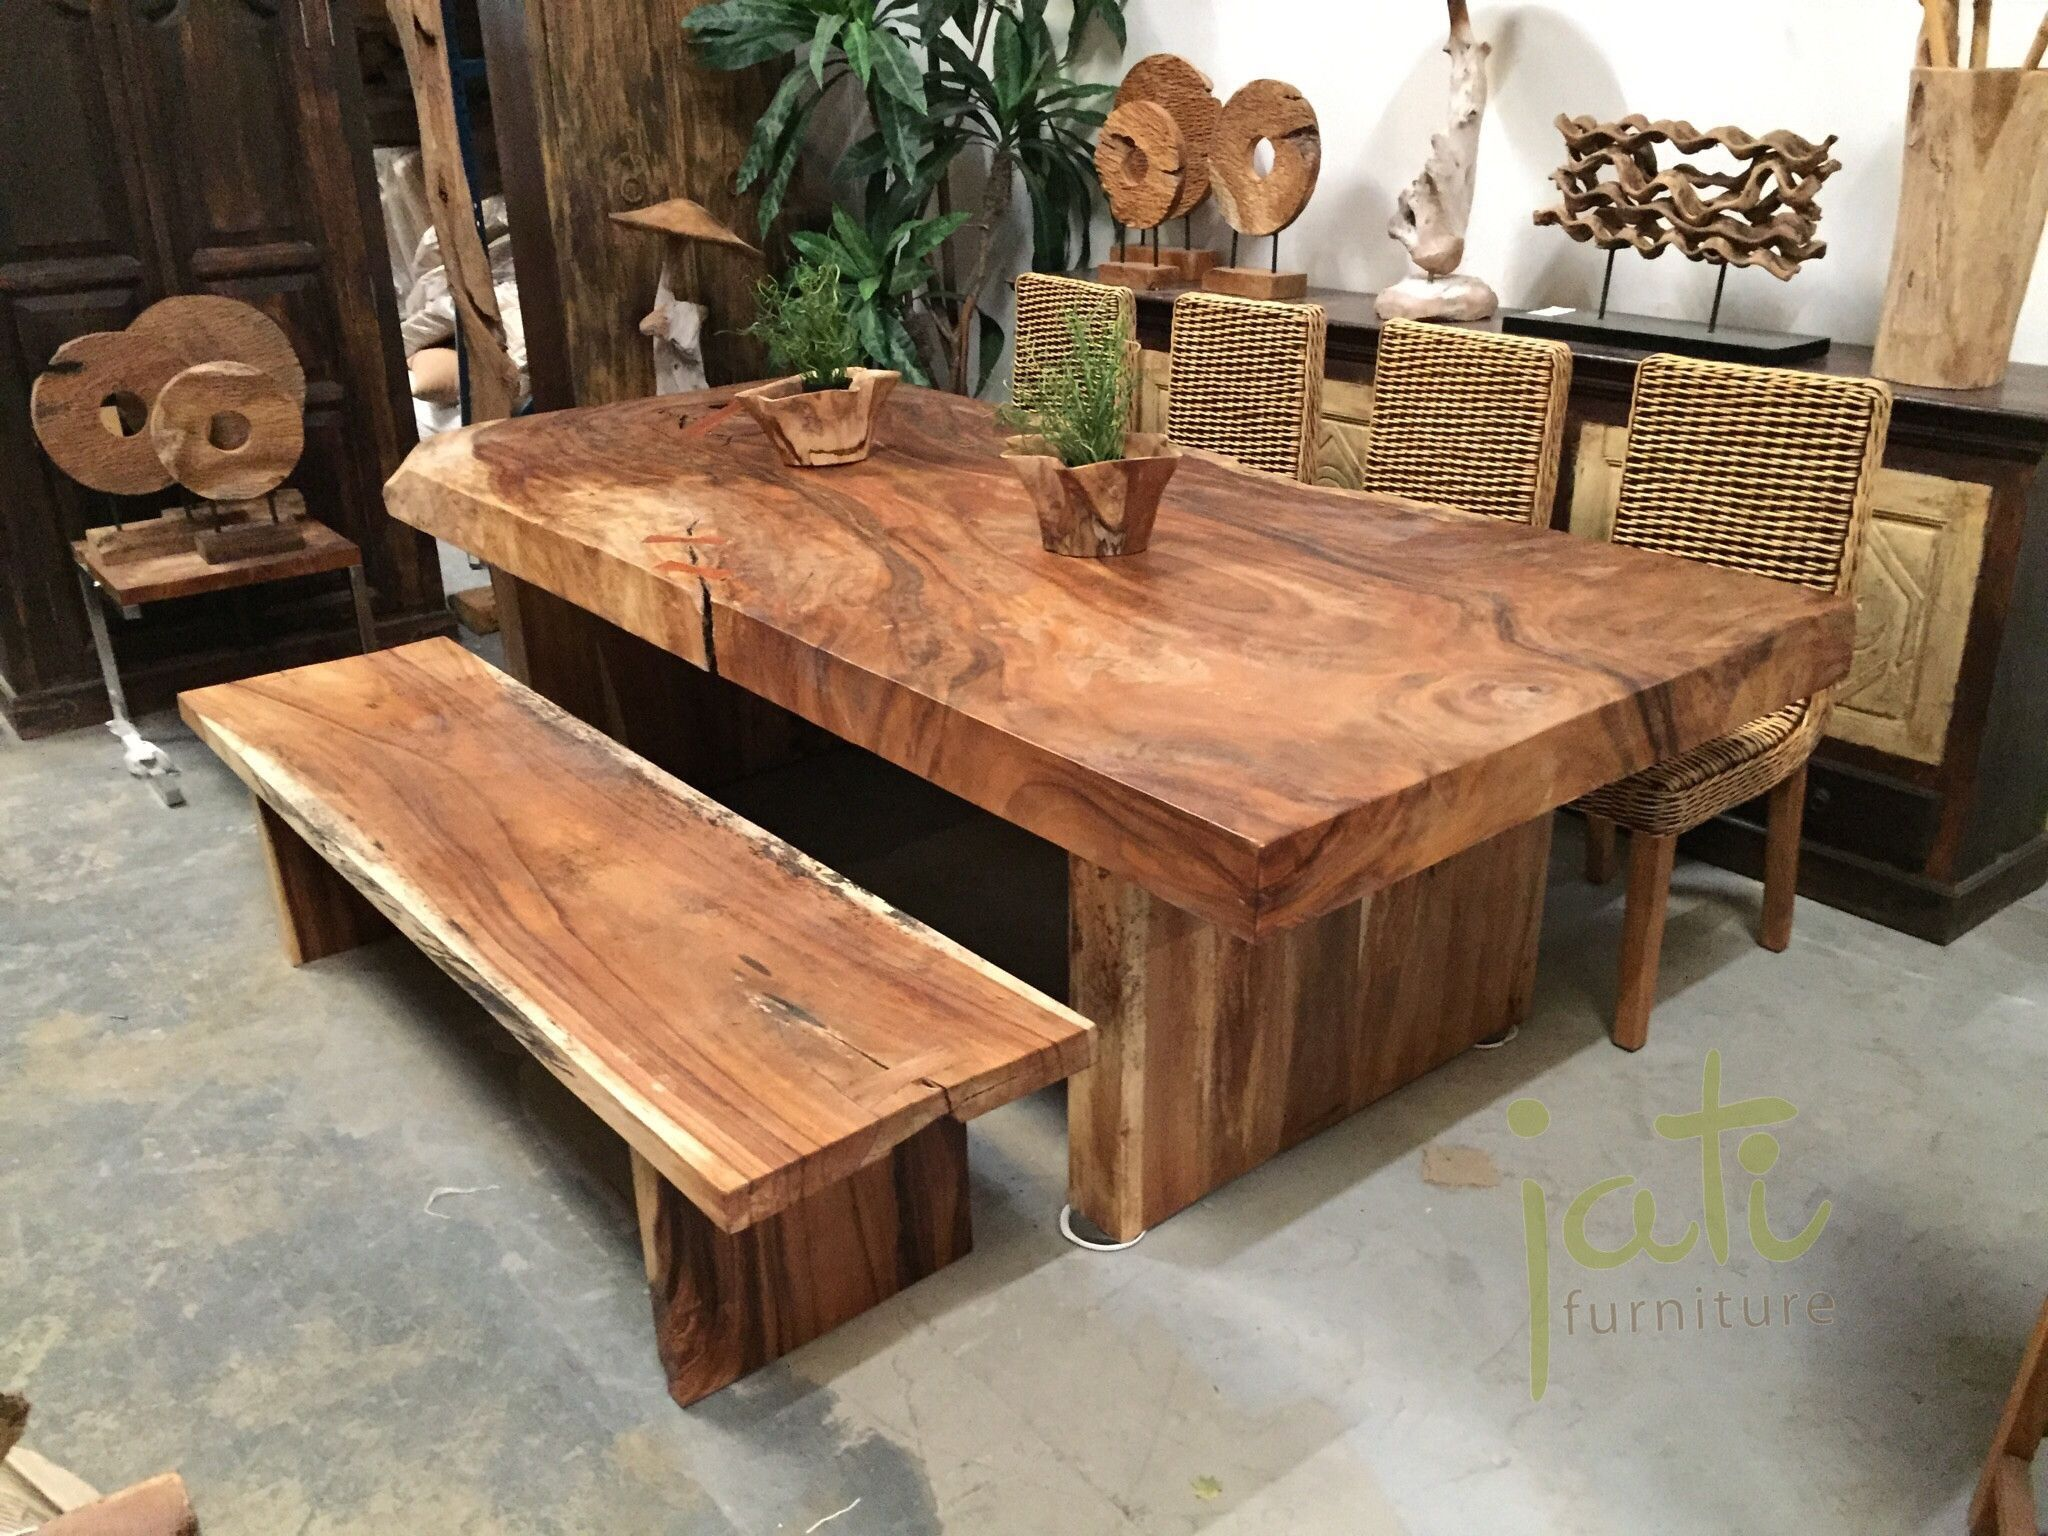 Get equipped with a reclaimed wood table and inspire your neighbors to go green